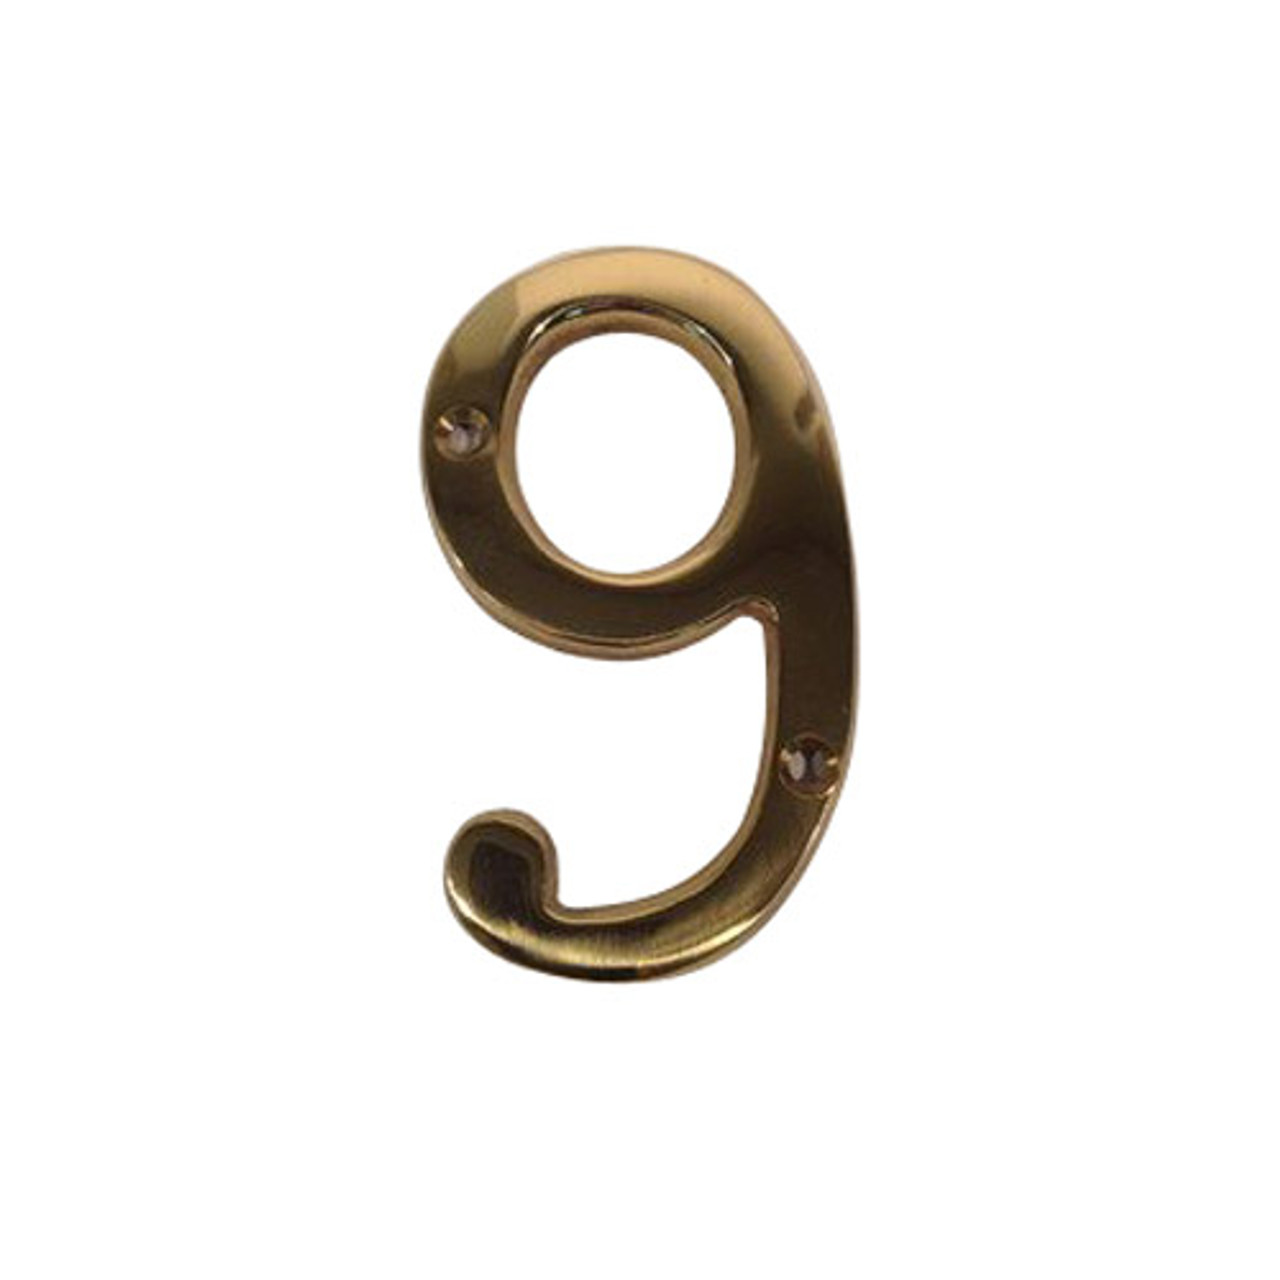 BN4-9-605 Don Jo Numbers in Bright Brass Finish